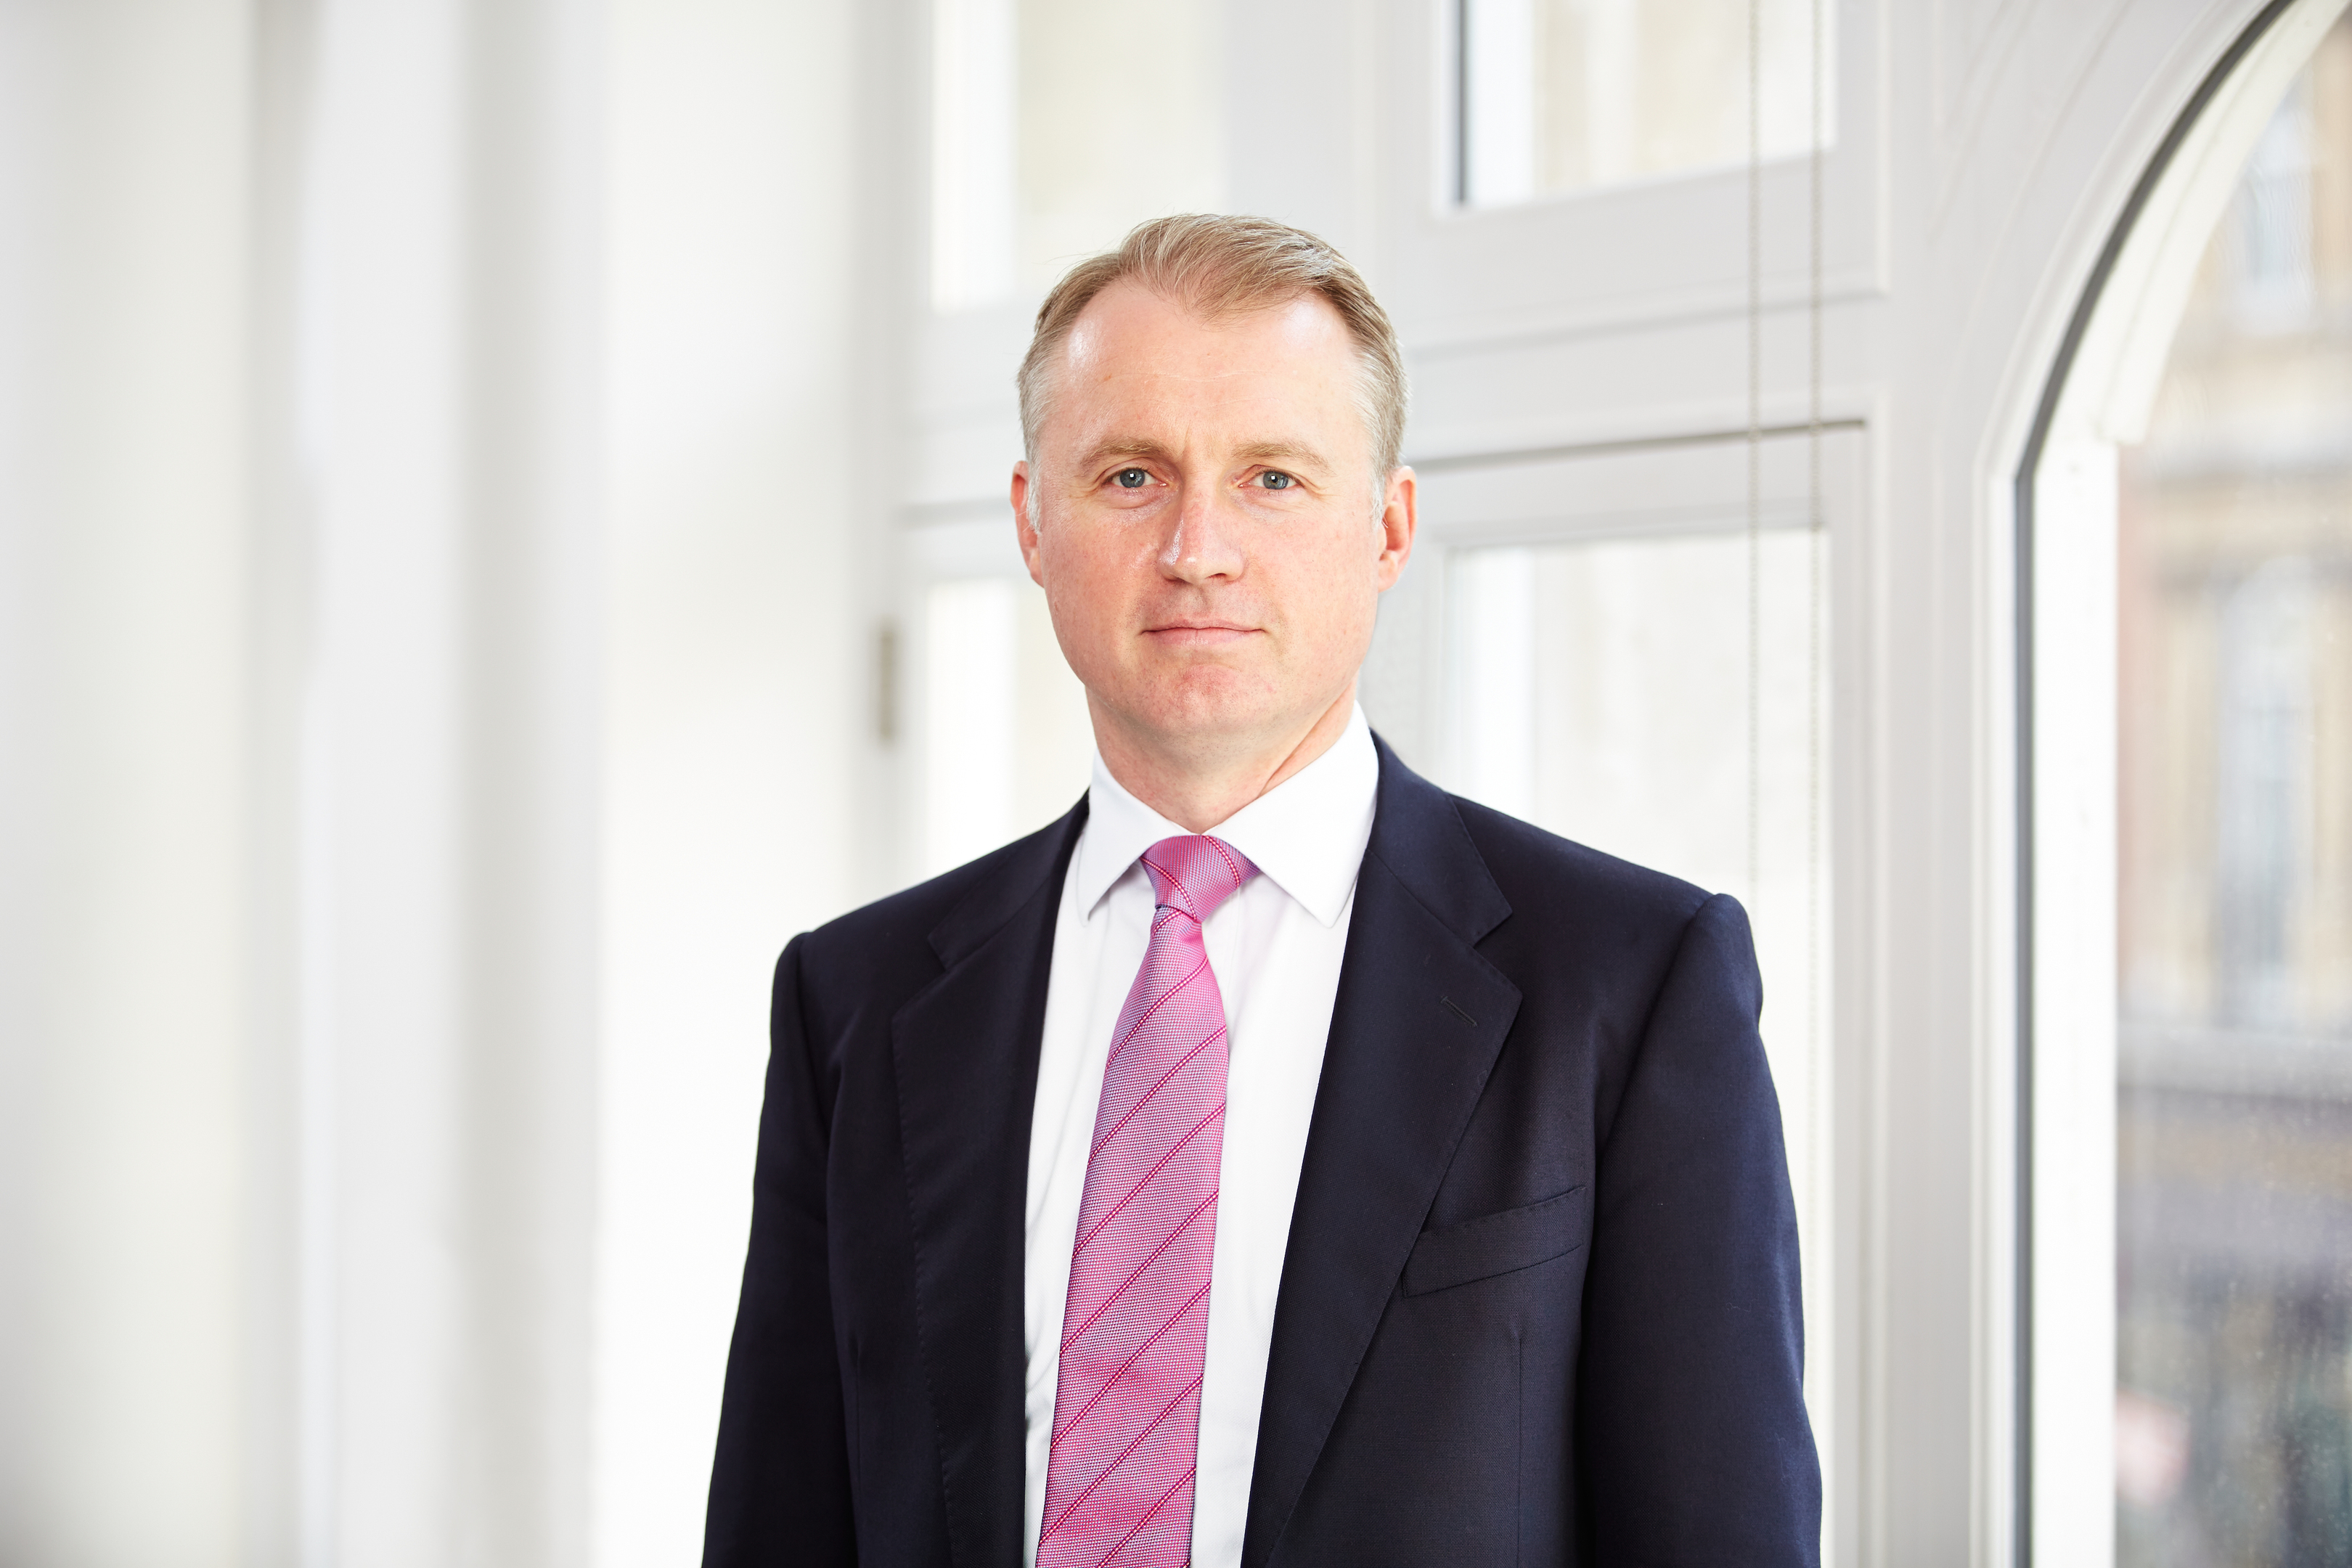 Penspen chief executive Peter O'Sullivan